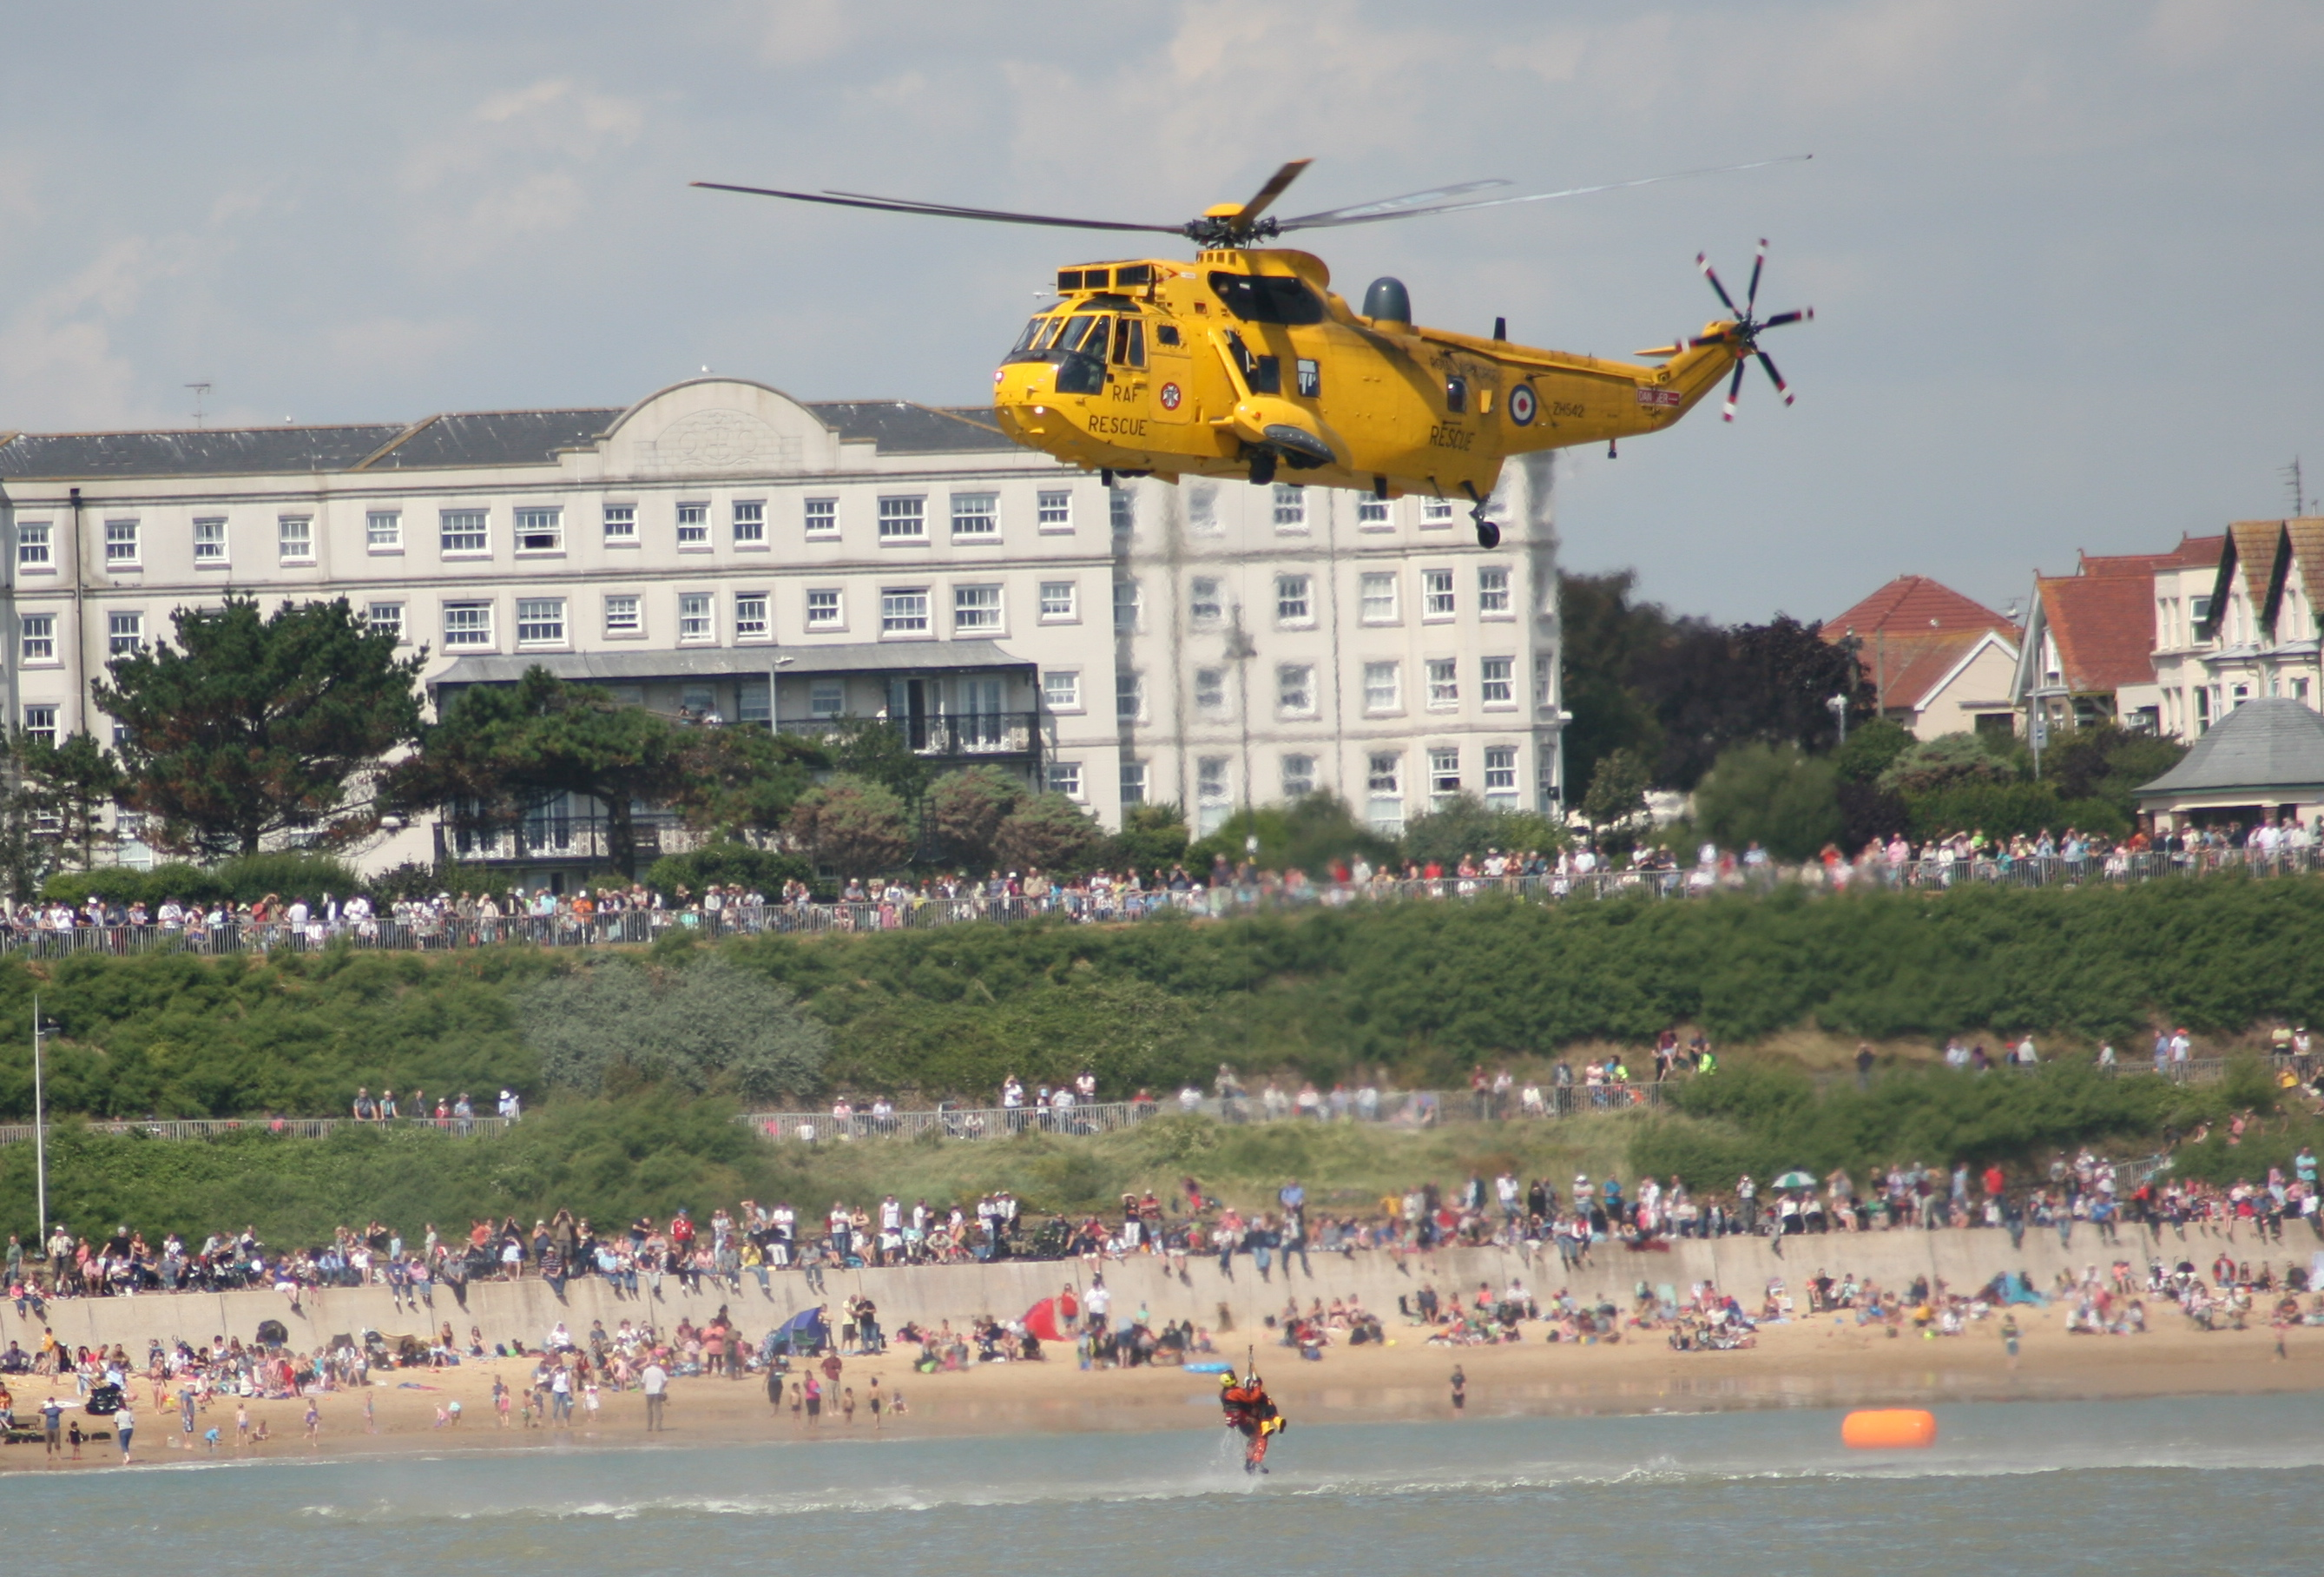 Air Sea Rescue display